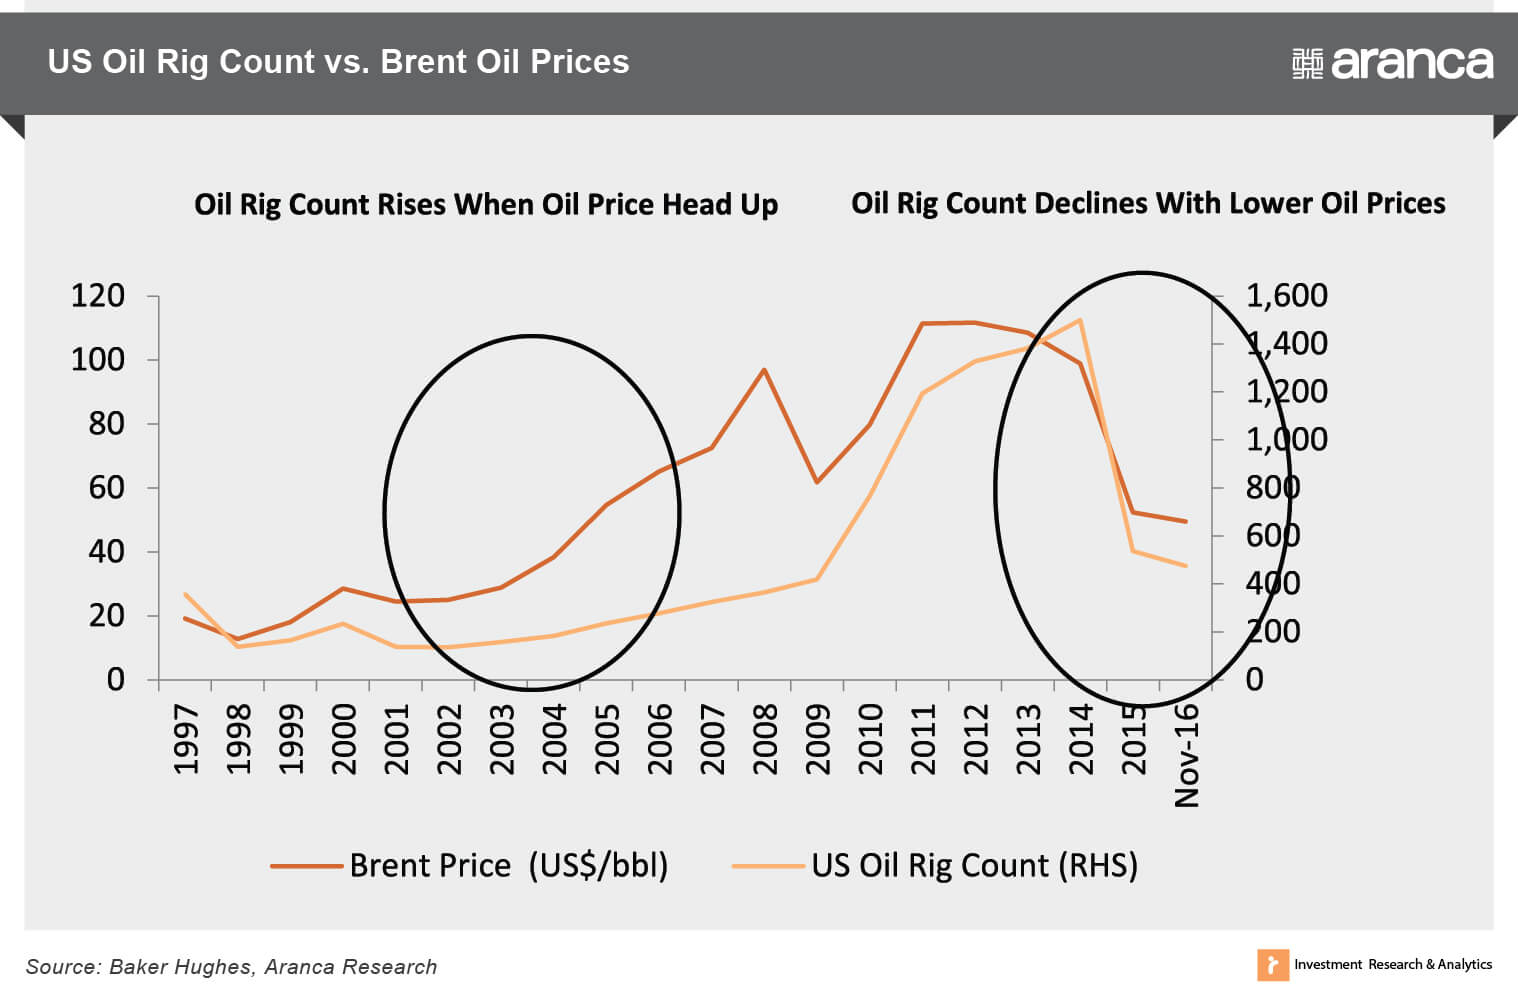 US Oil Rig Count vs. Brent Oil Prices